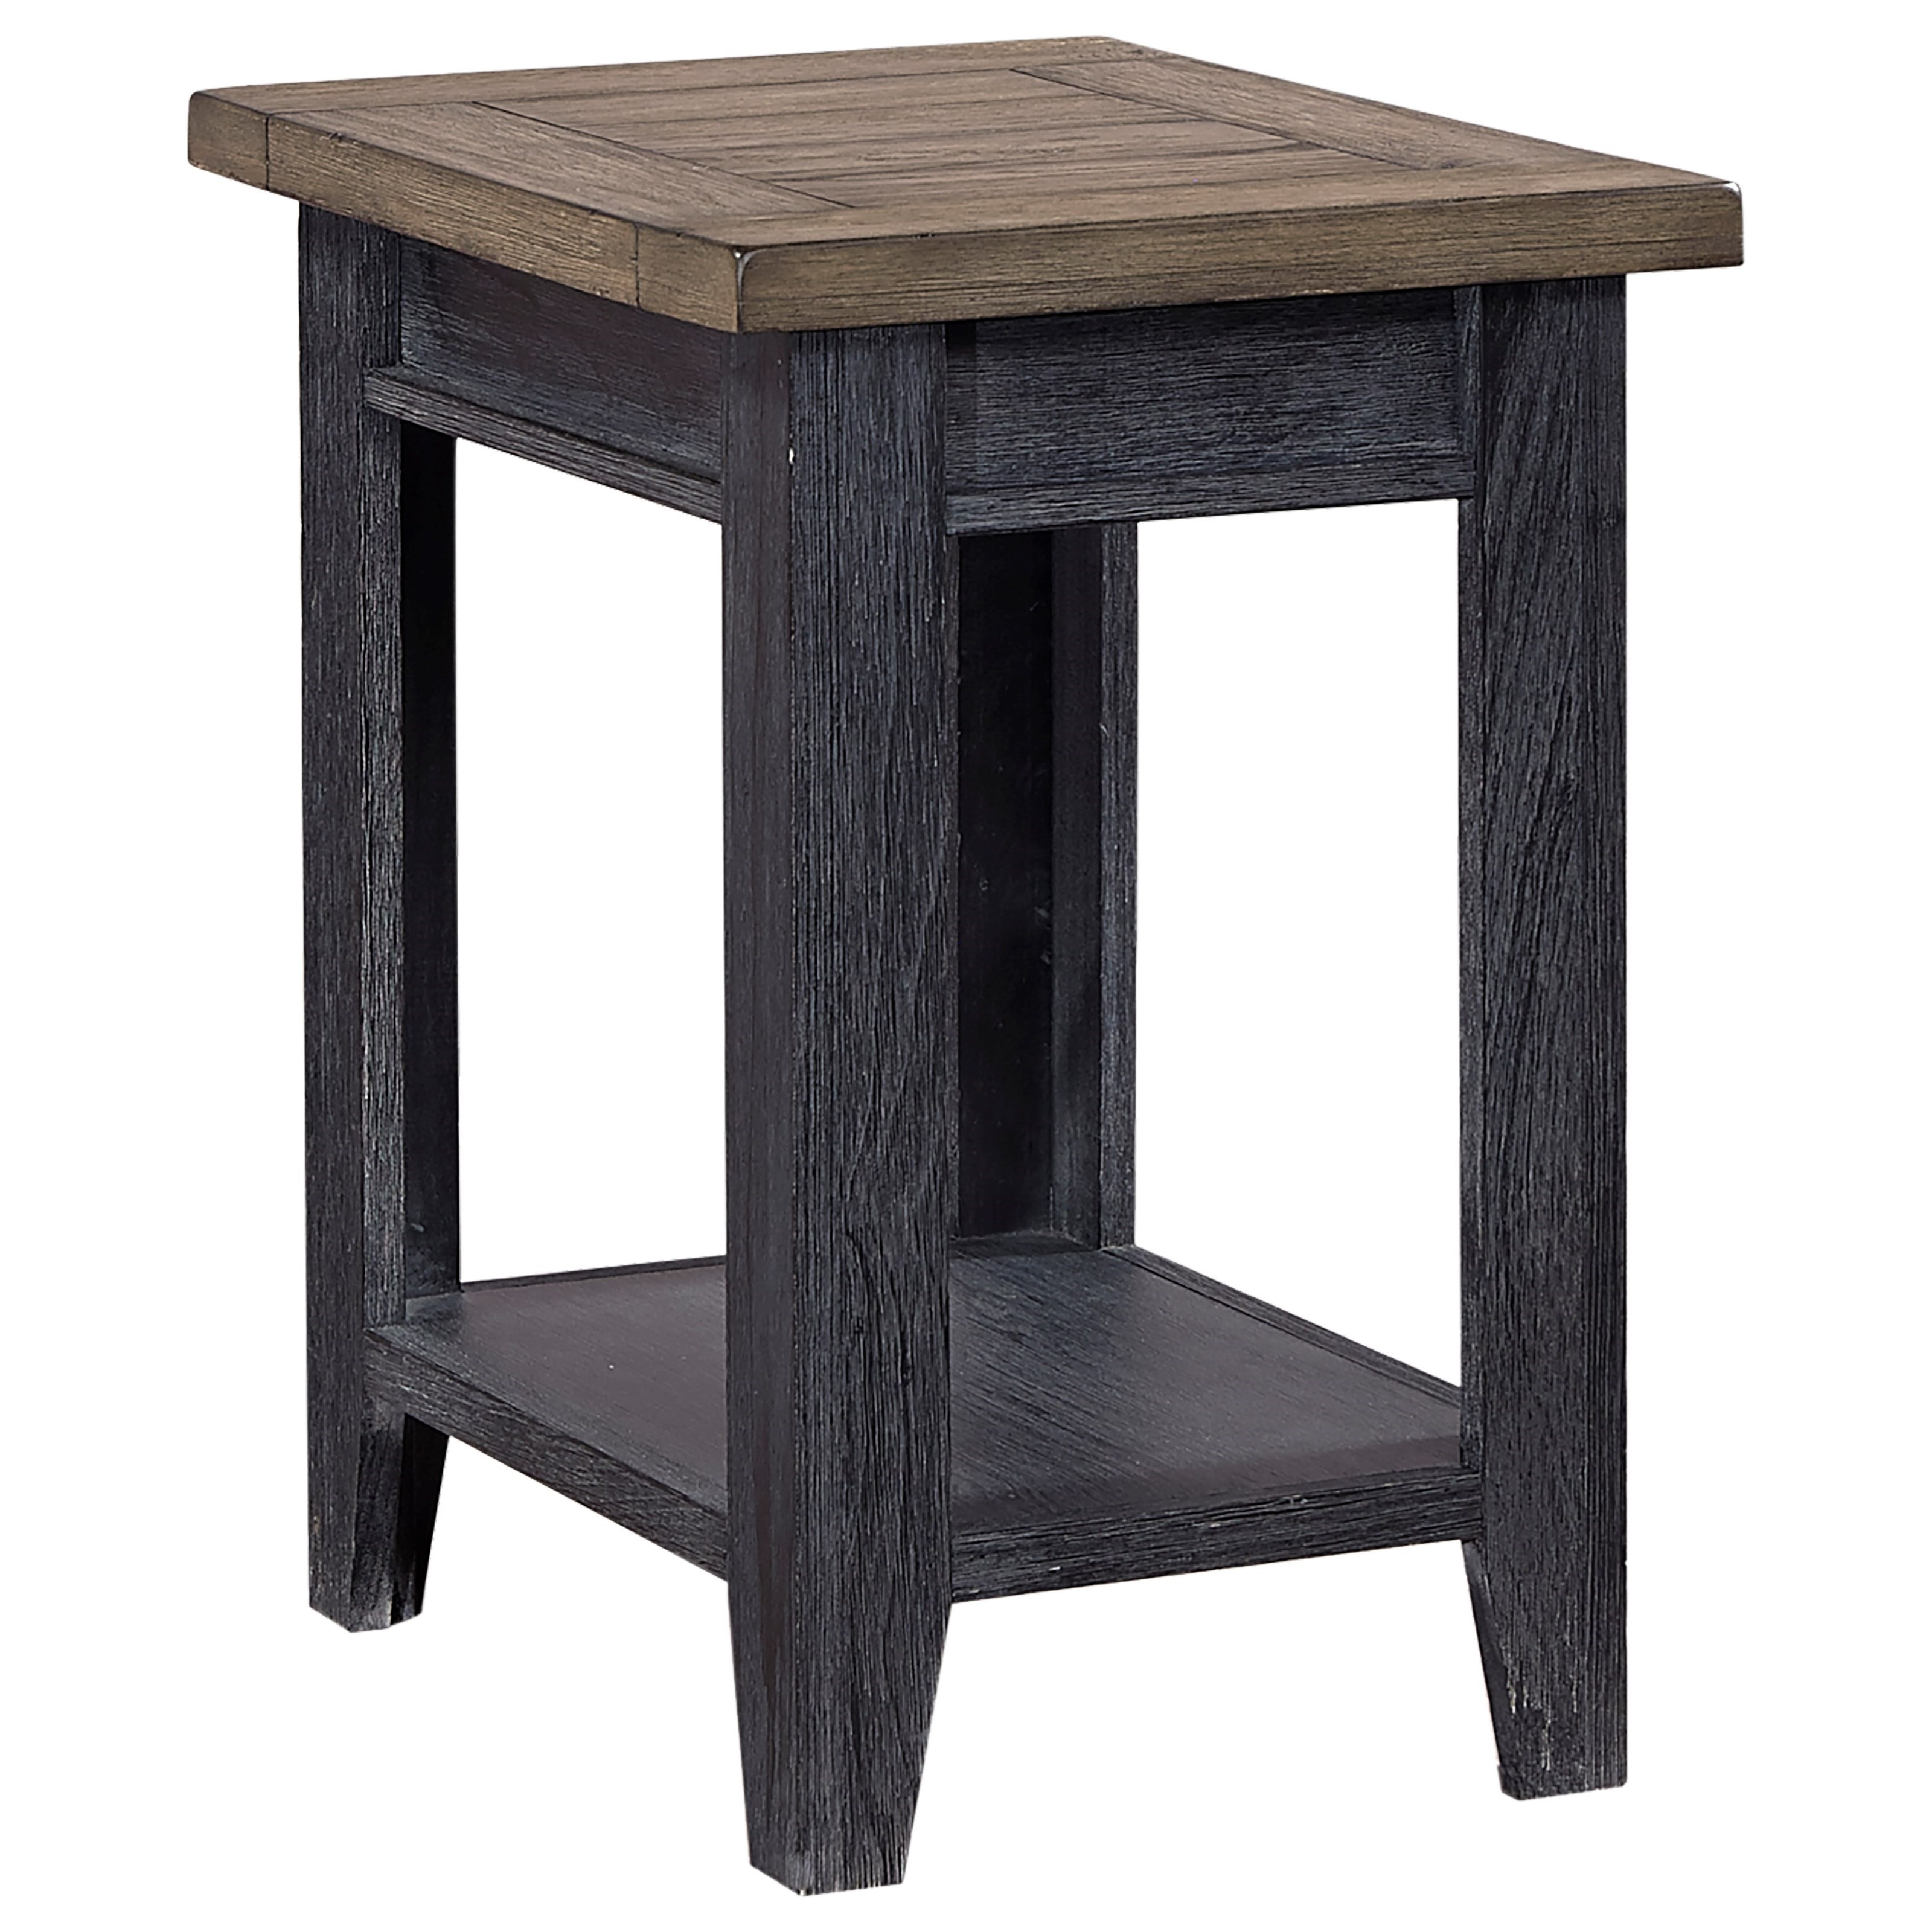 Eastport Chairside Table by Aspenhome at Walker's Furniture